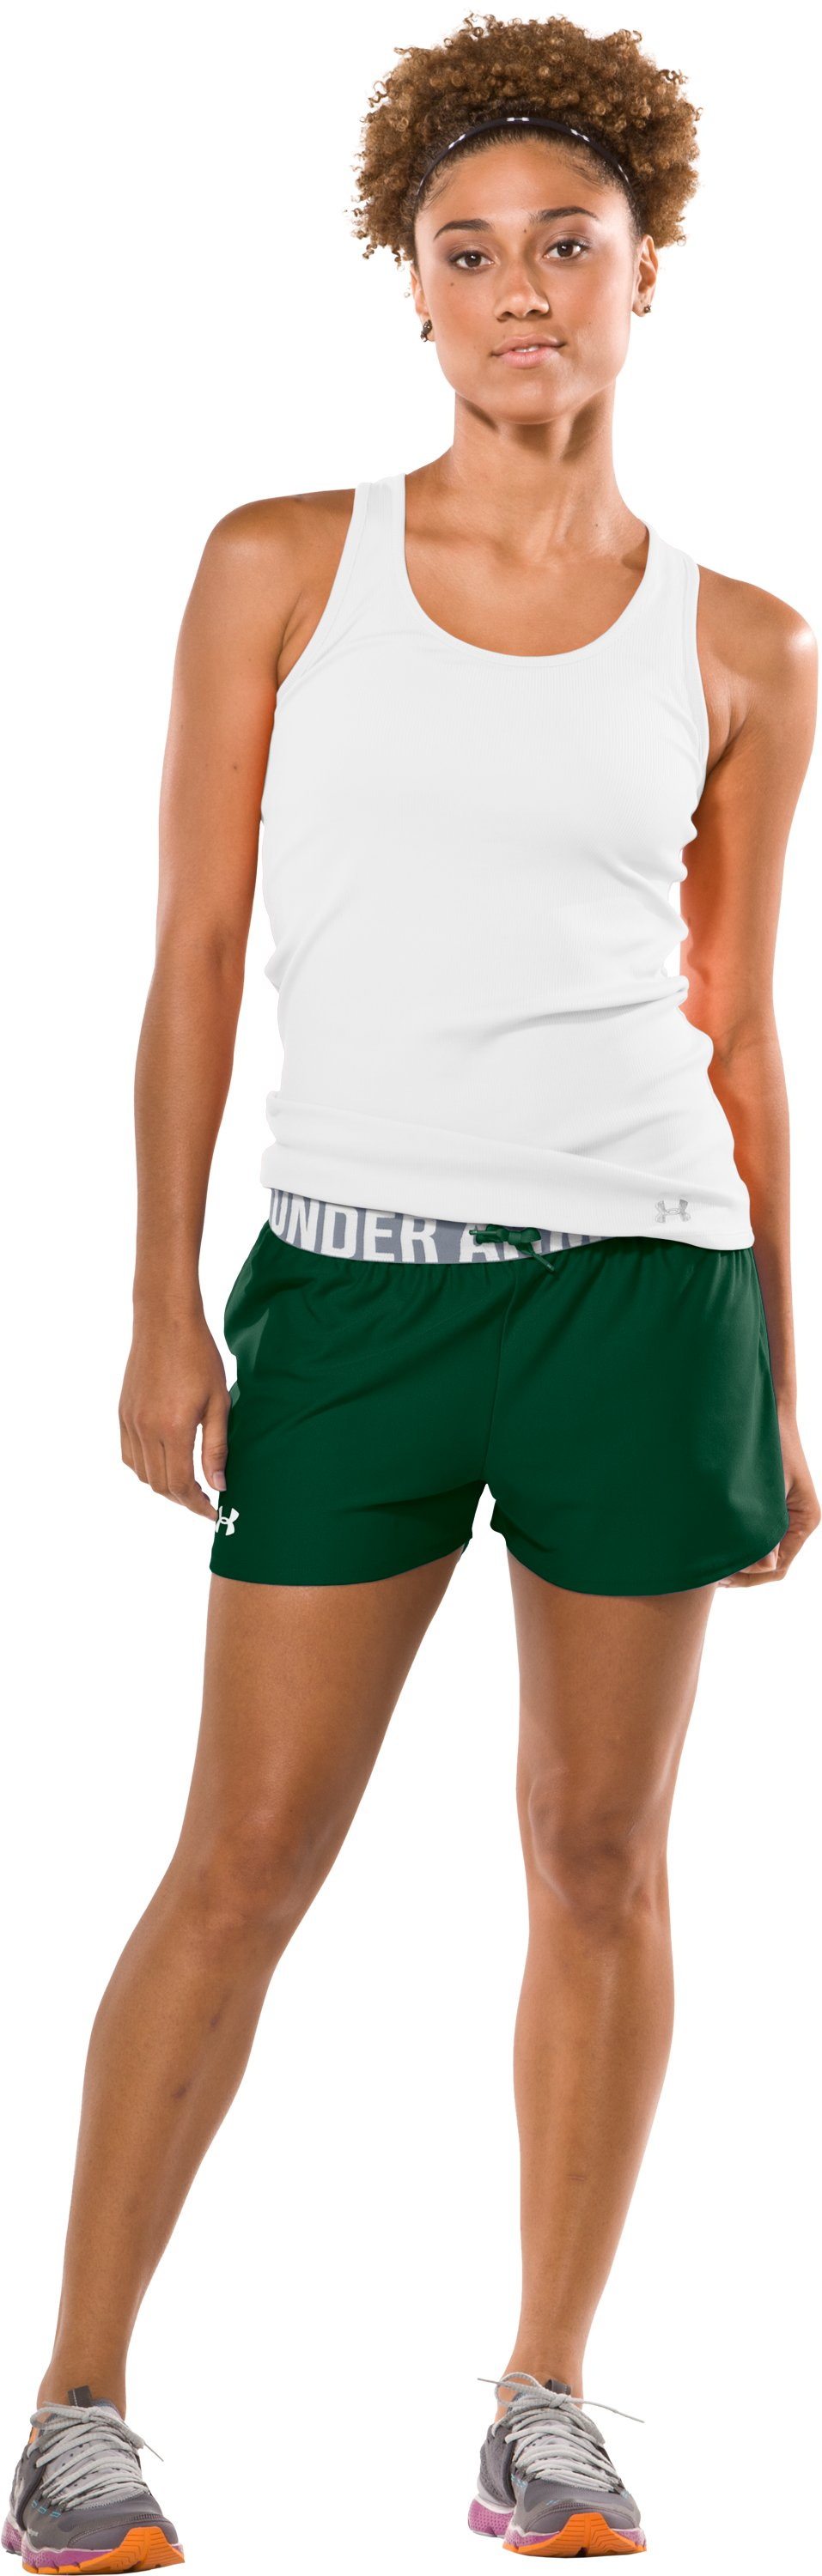 "Women's Play Up 3"" Short, Forest Green, Front"